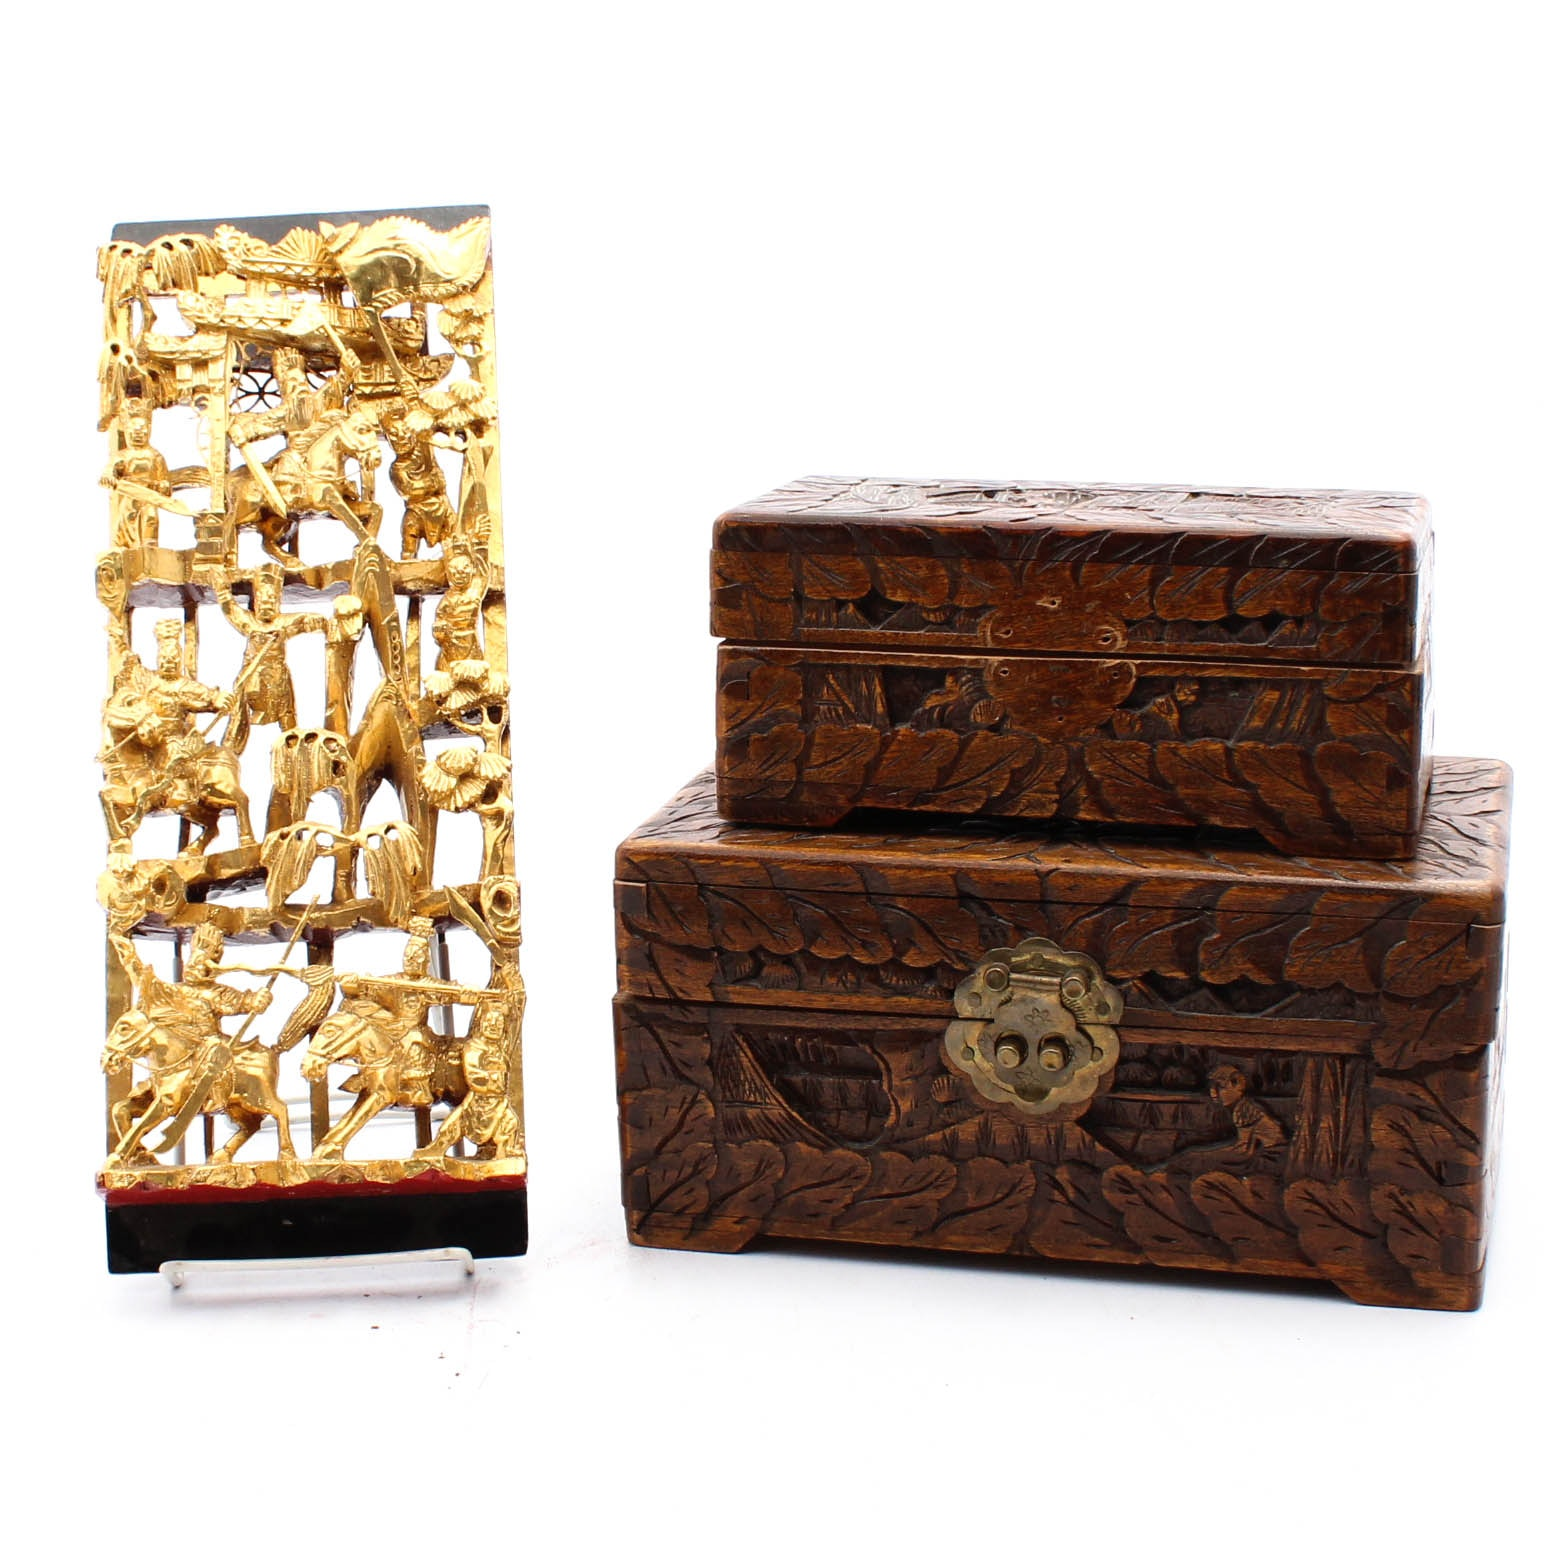 Carved Chinese Camphor Wood Boxes and Decorative Carving